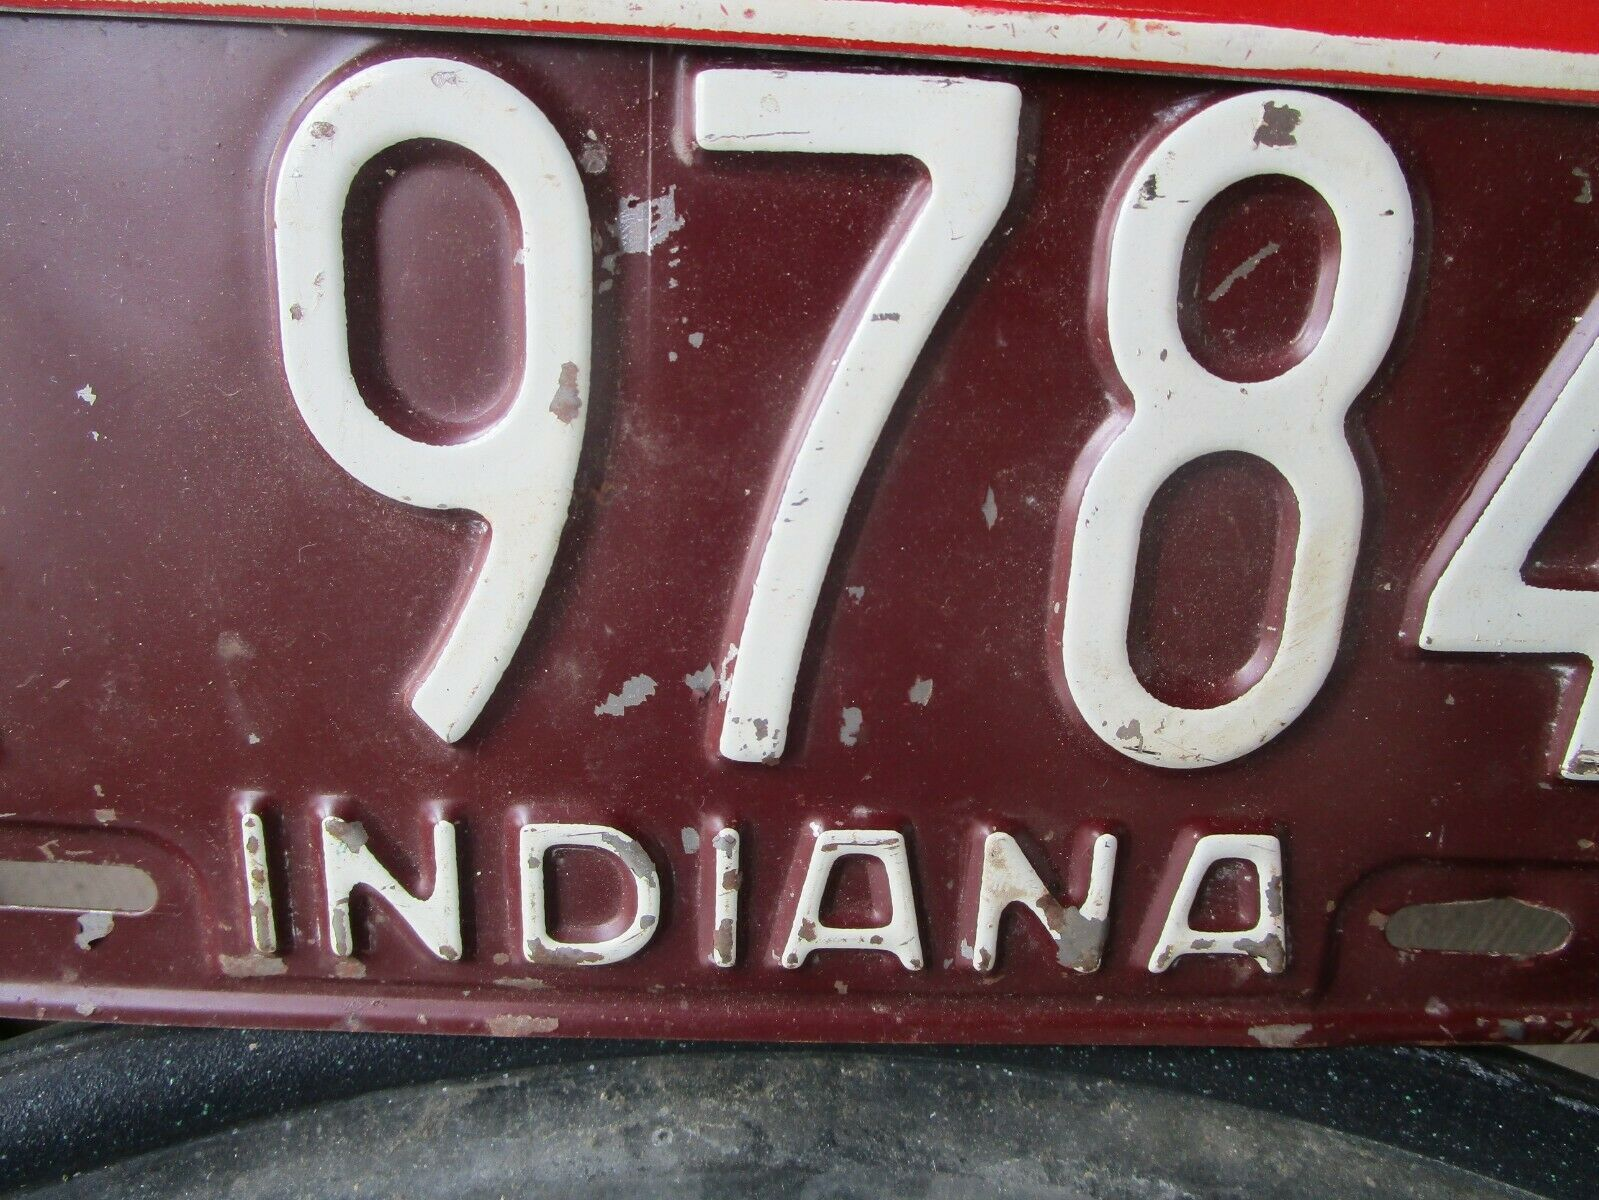 Vintage 1954 Indiana Trailer License Plate w/ 55 Tag 9784 7266 Airstream Shasta image 4